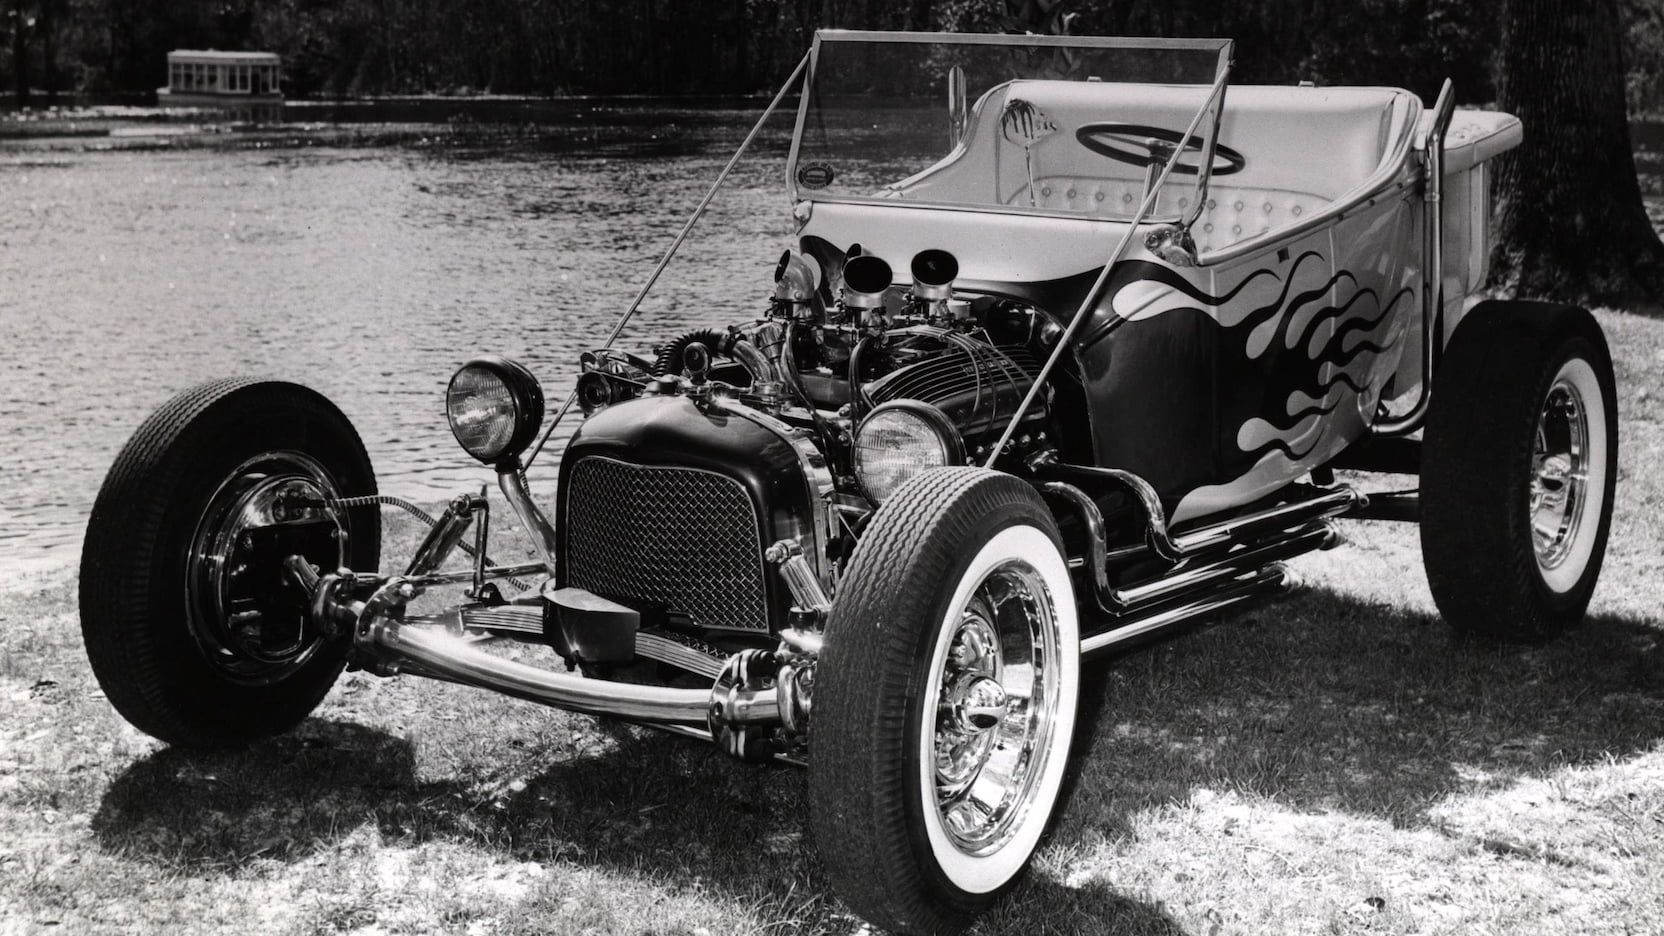 Perhaps the world's most famous hot rod, Norm Grabow Carros